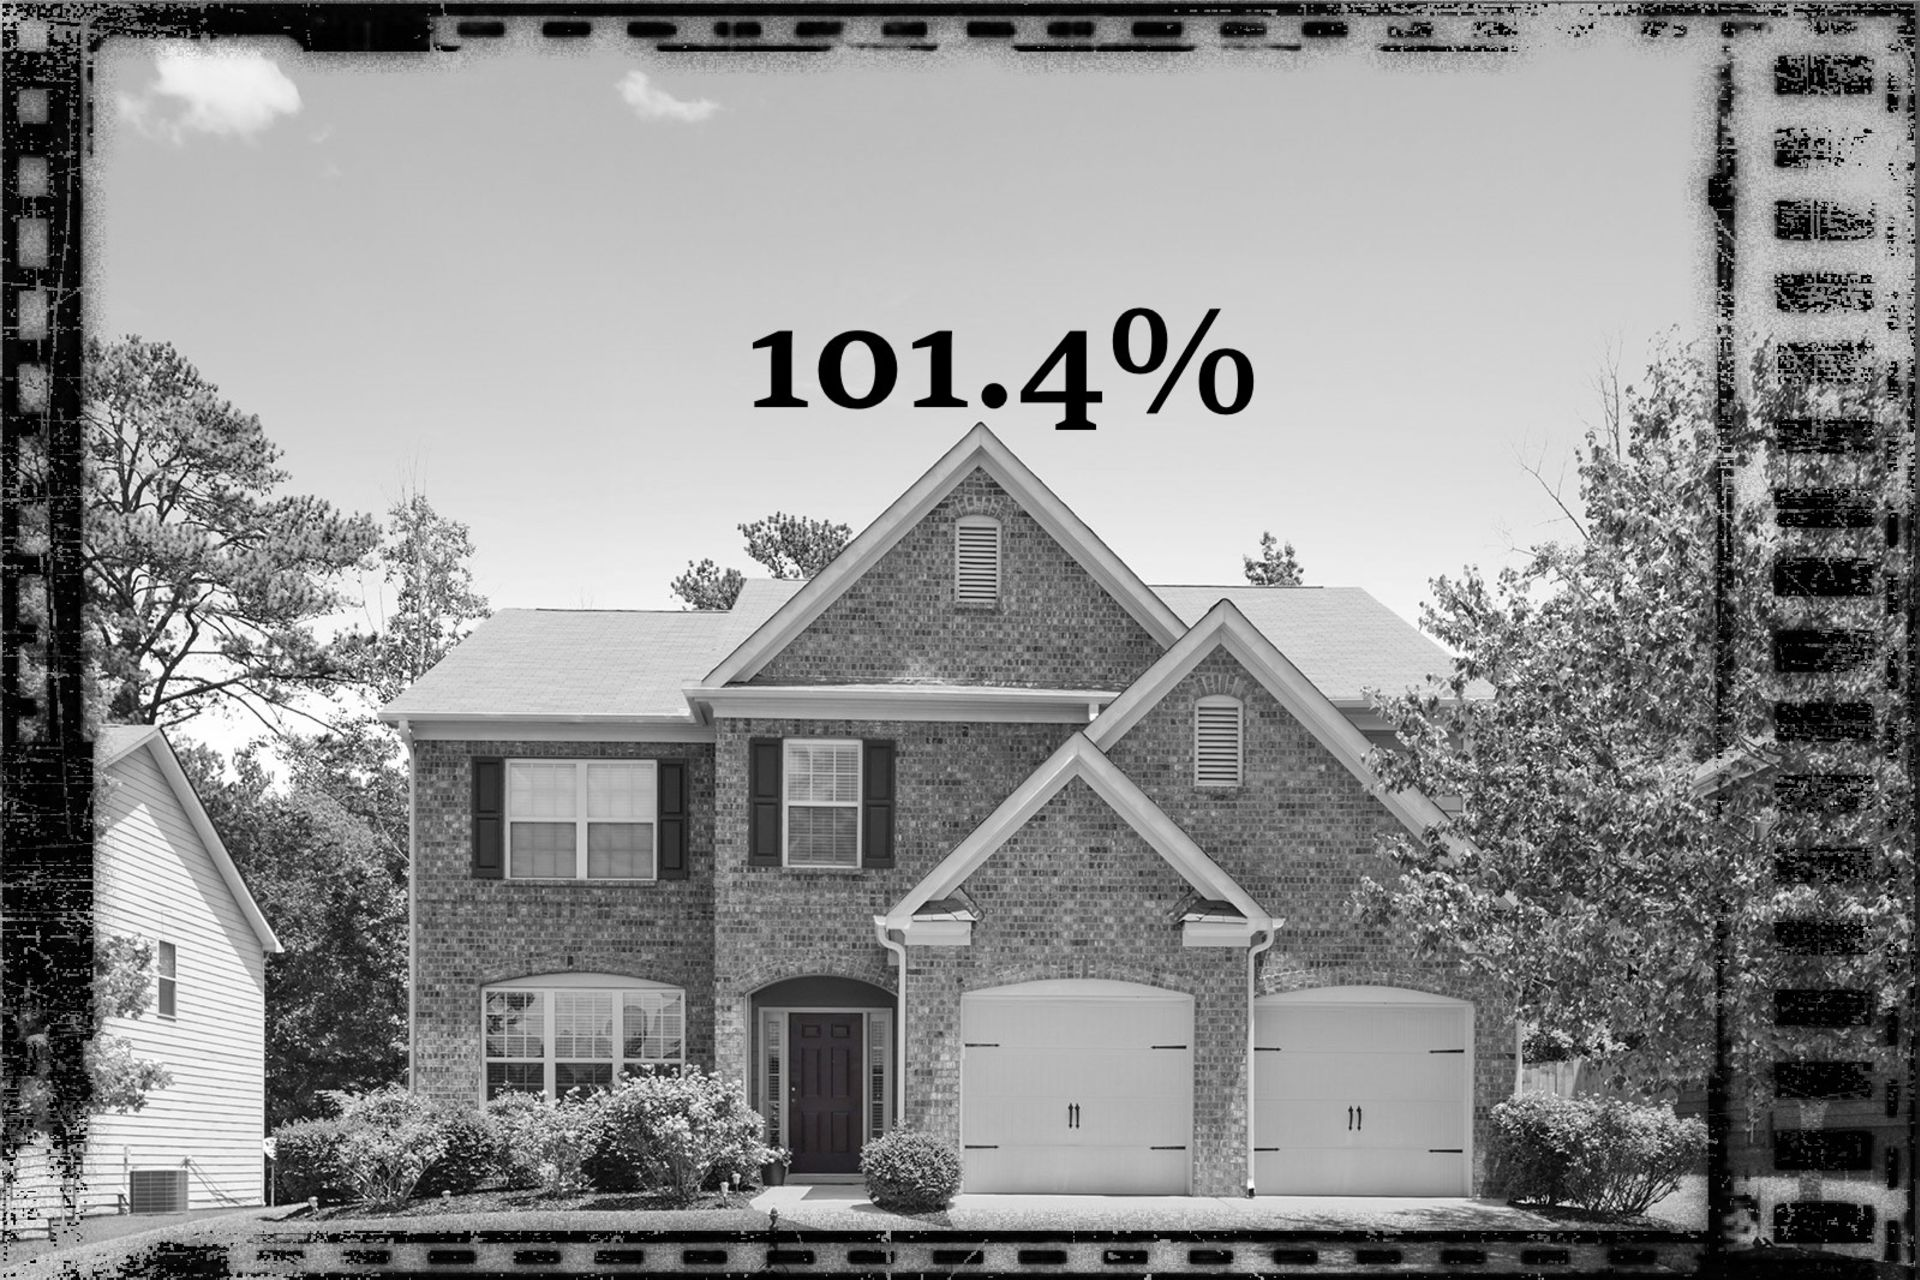 101.4% of asking price, SOLD in THREE days